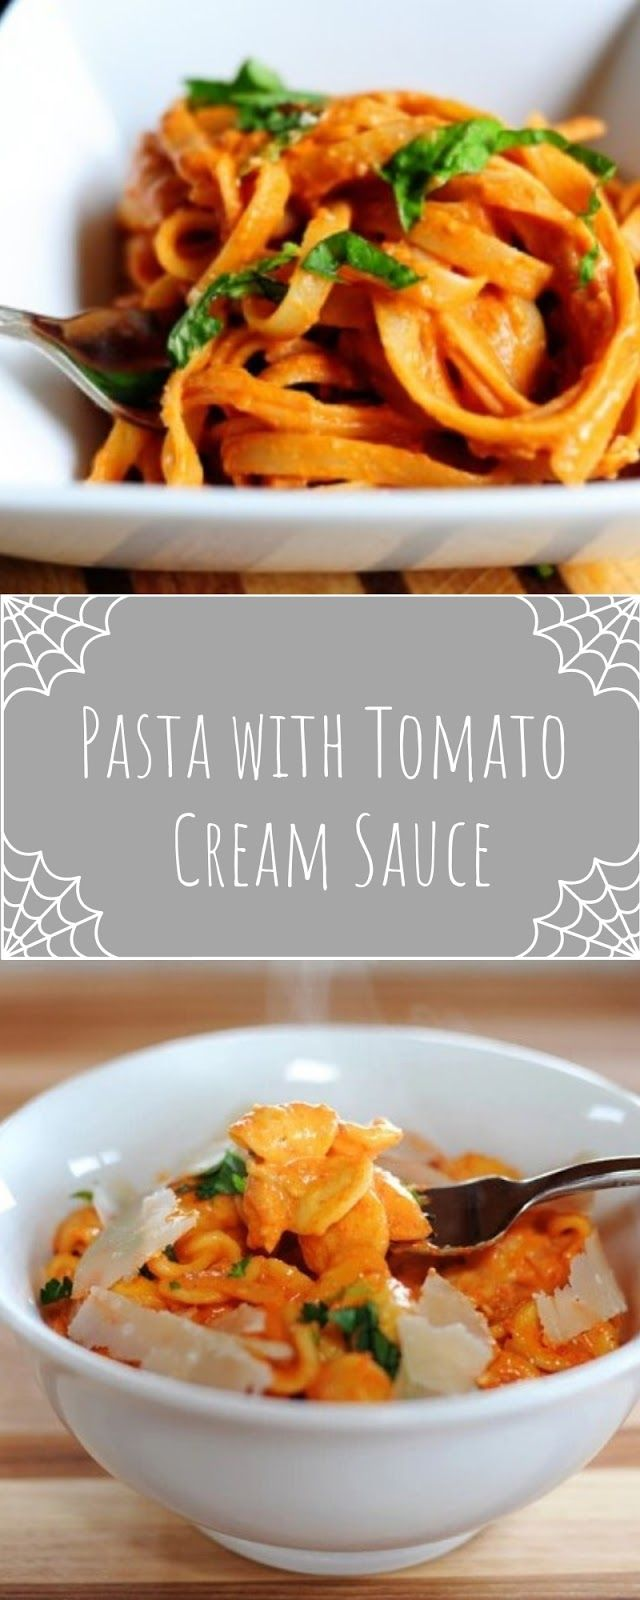 Pasta with Tomato Cream Sauce | Velia Kitchen #tomatocreamsauces